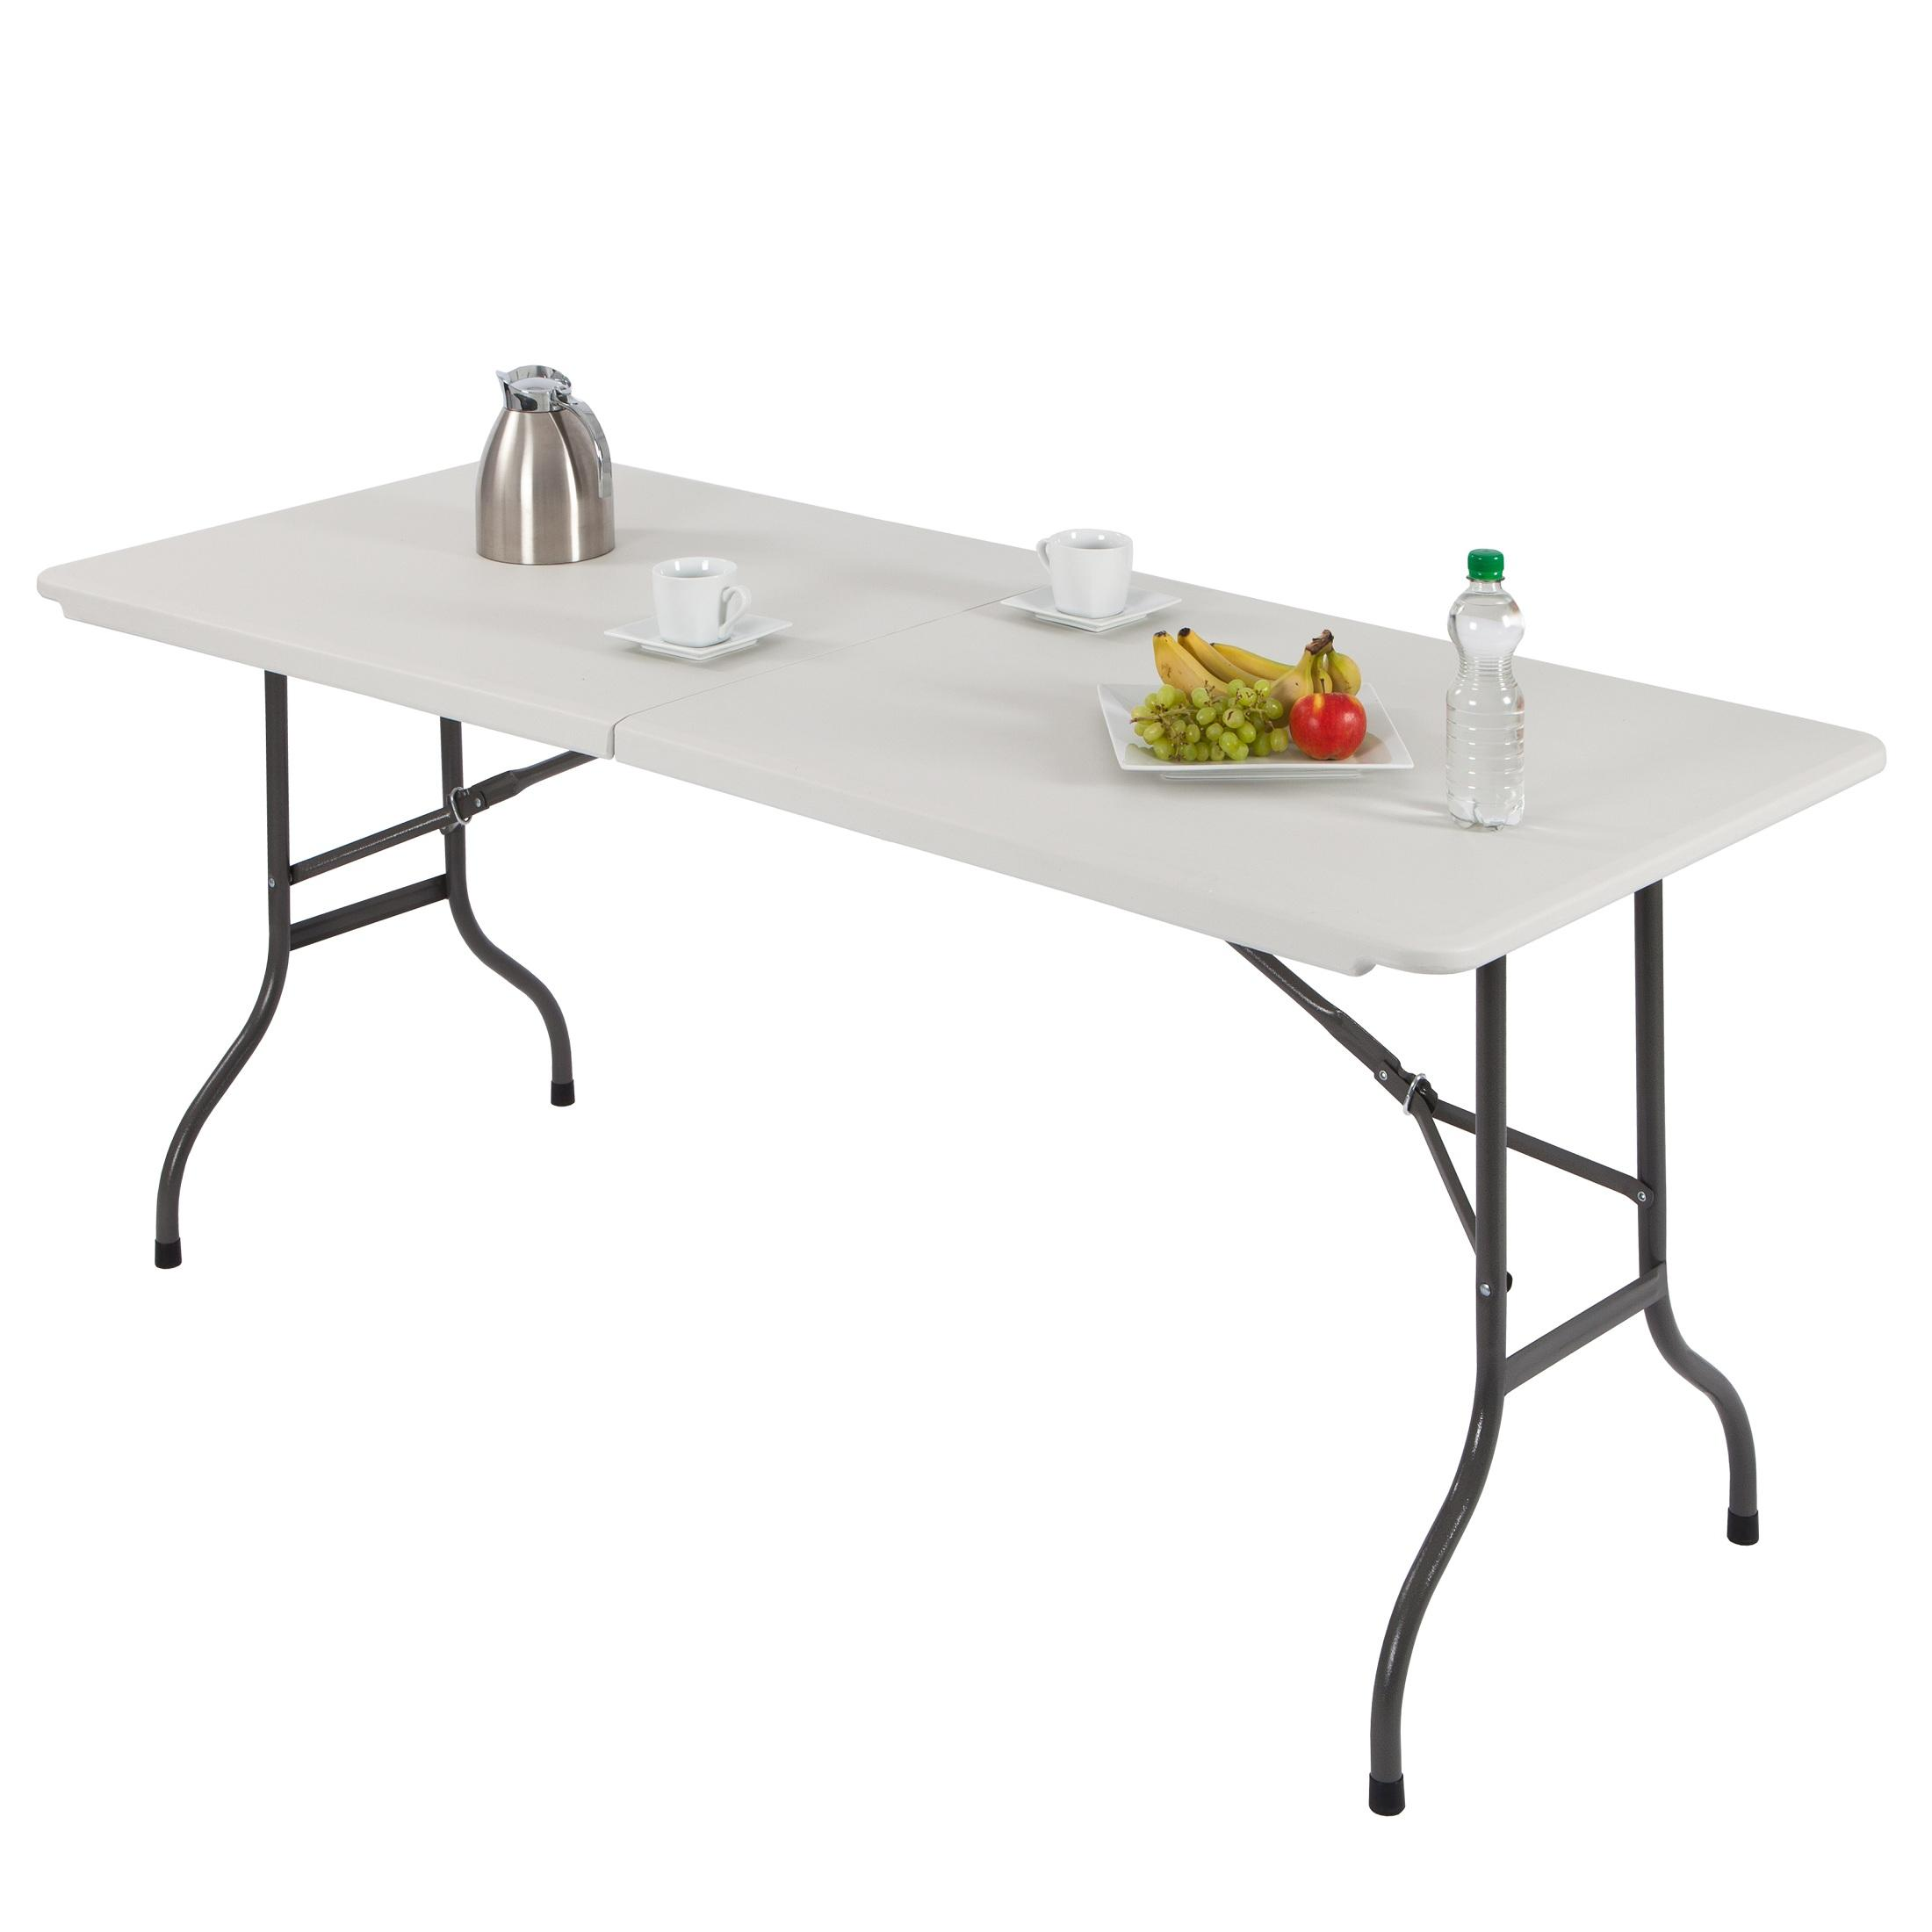 Grande table pliante stunning table pliante bistro x cm for Grande table pliante ikea